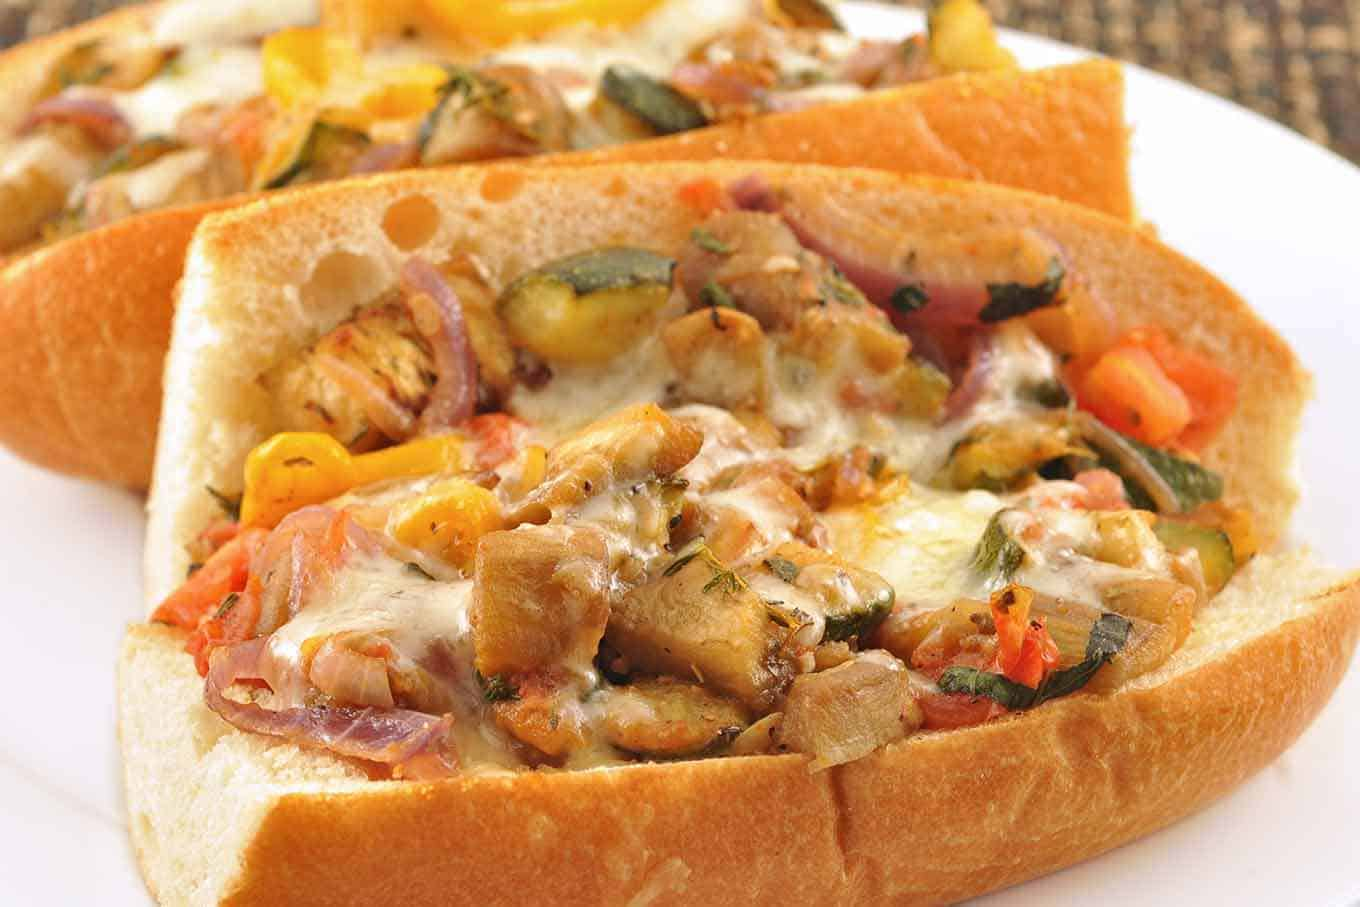 Toasted baguette filled with eggplant, bell peppers, zucchini, and melted cheese on a plate.